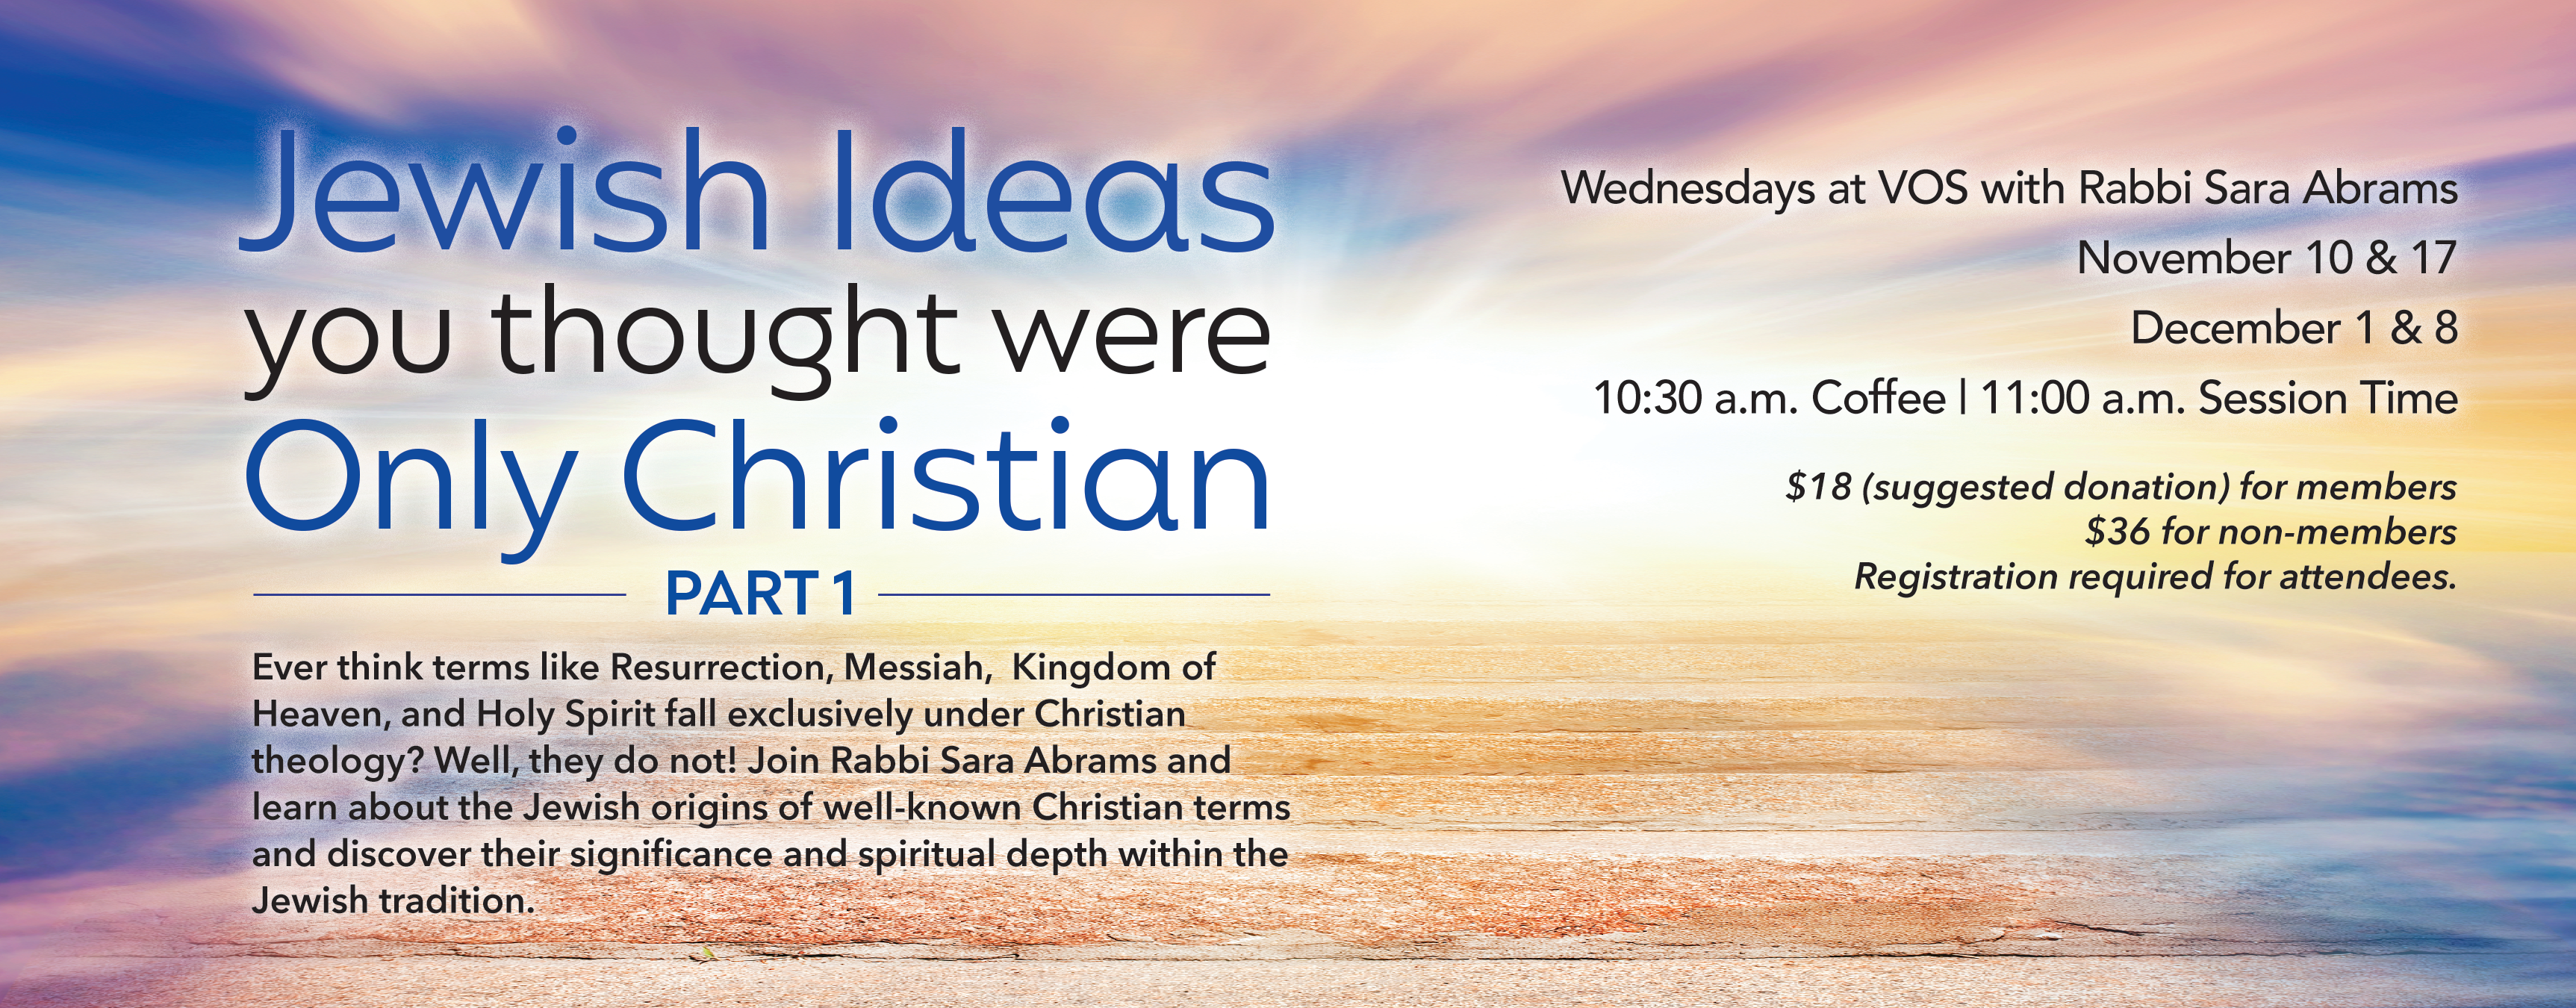 """<a href=""""https://www.vosla.org/form/Jewish-Ideas""""                                     target=""""_blank"""">                                                                 <span class=""""slider_title"""">                                     Click Here to Register                                </span>                                                                 </a>"""